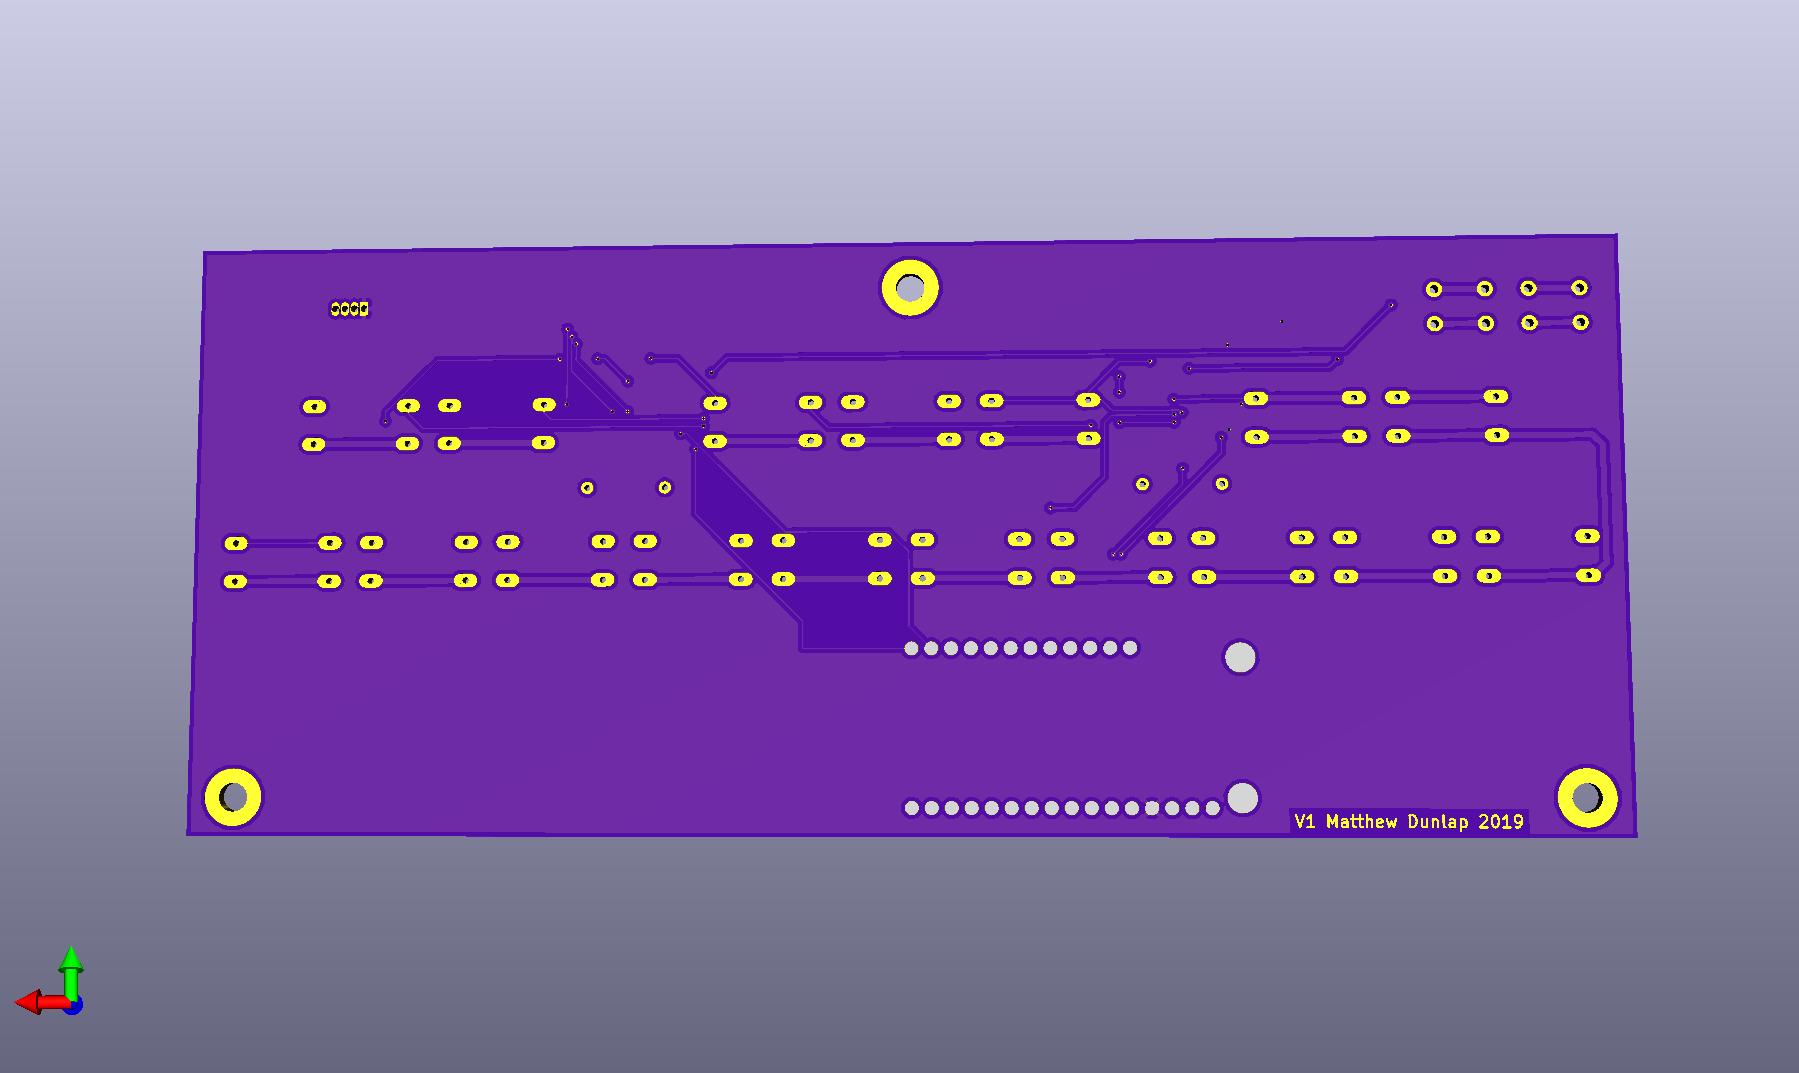 3D Render of the Back of the PCB